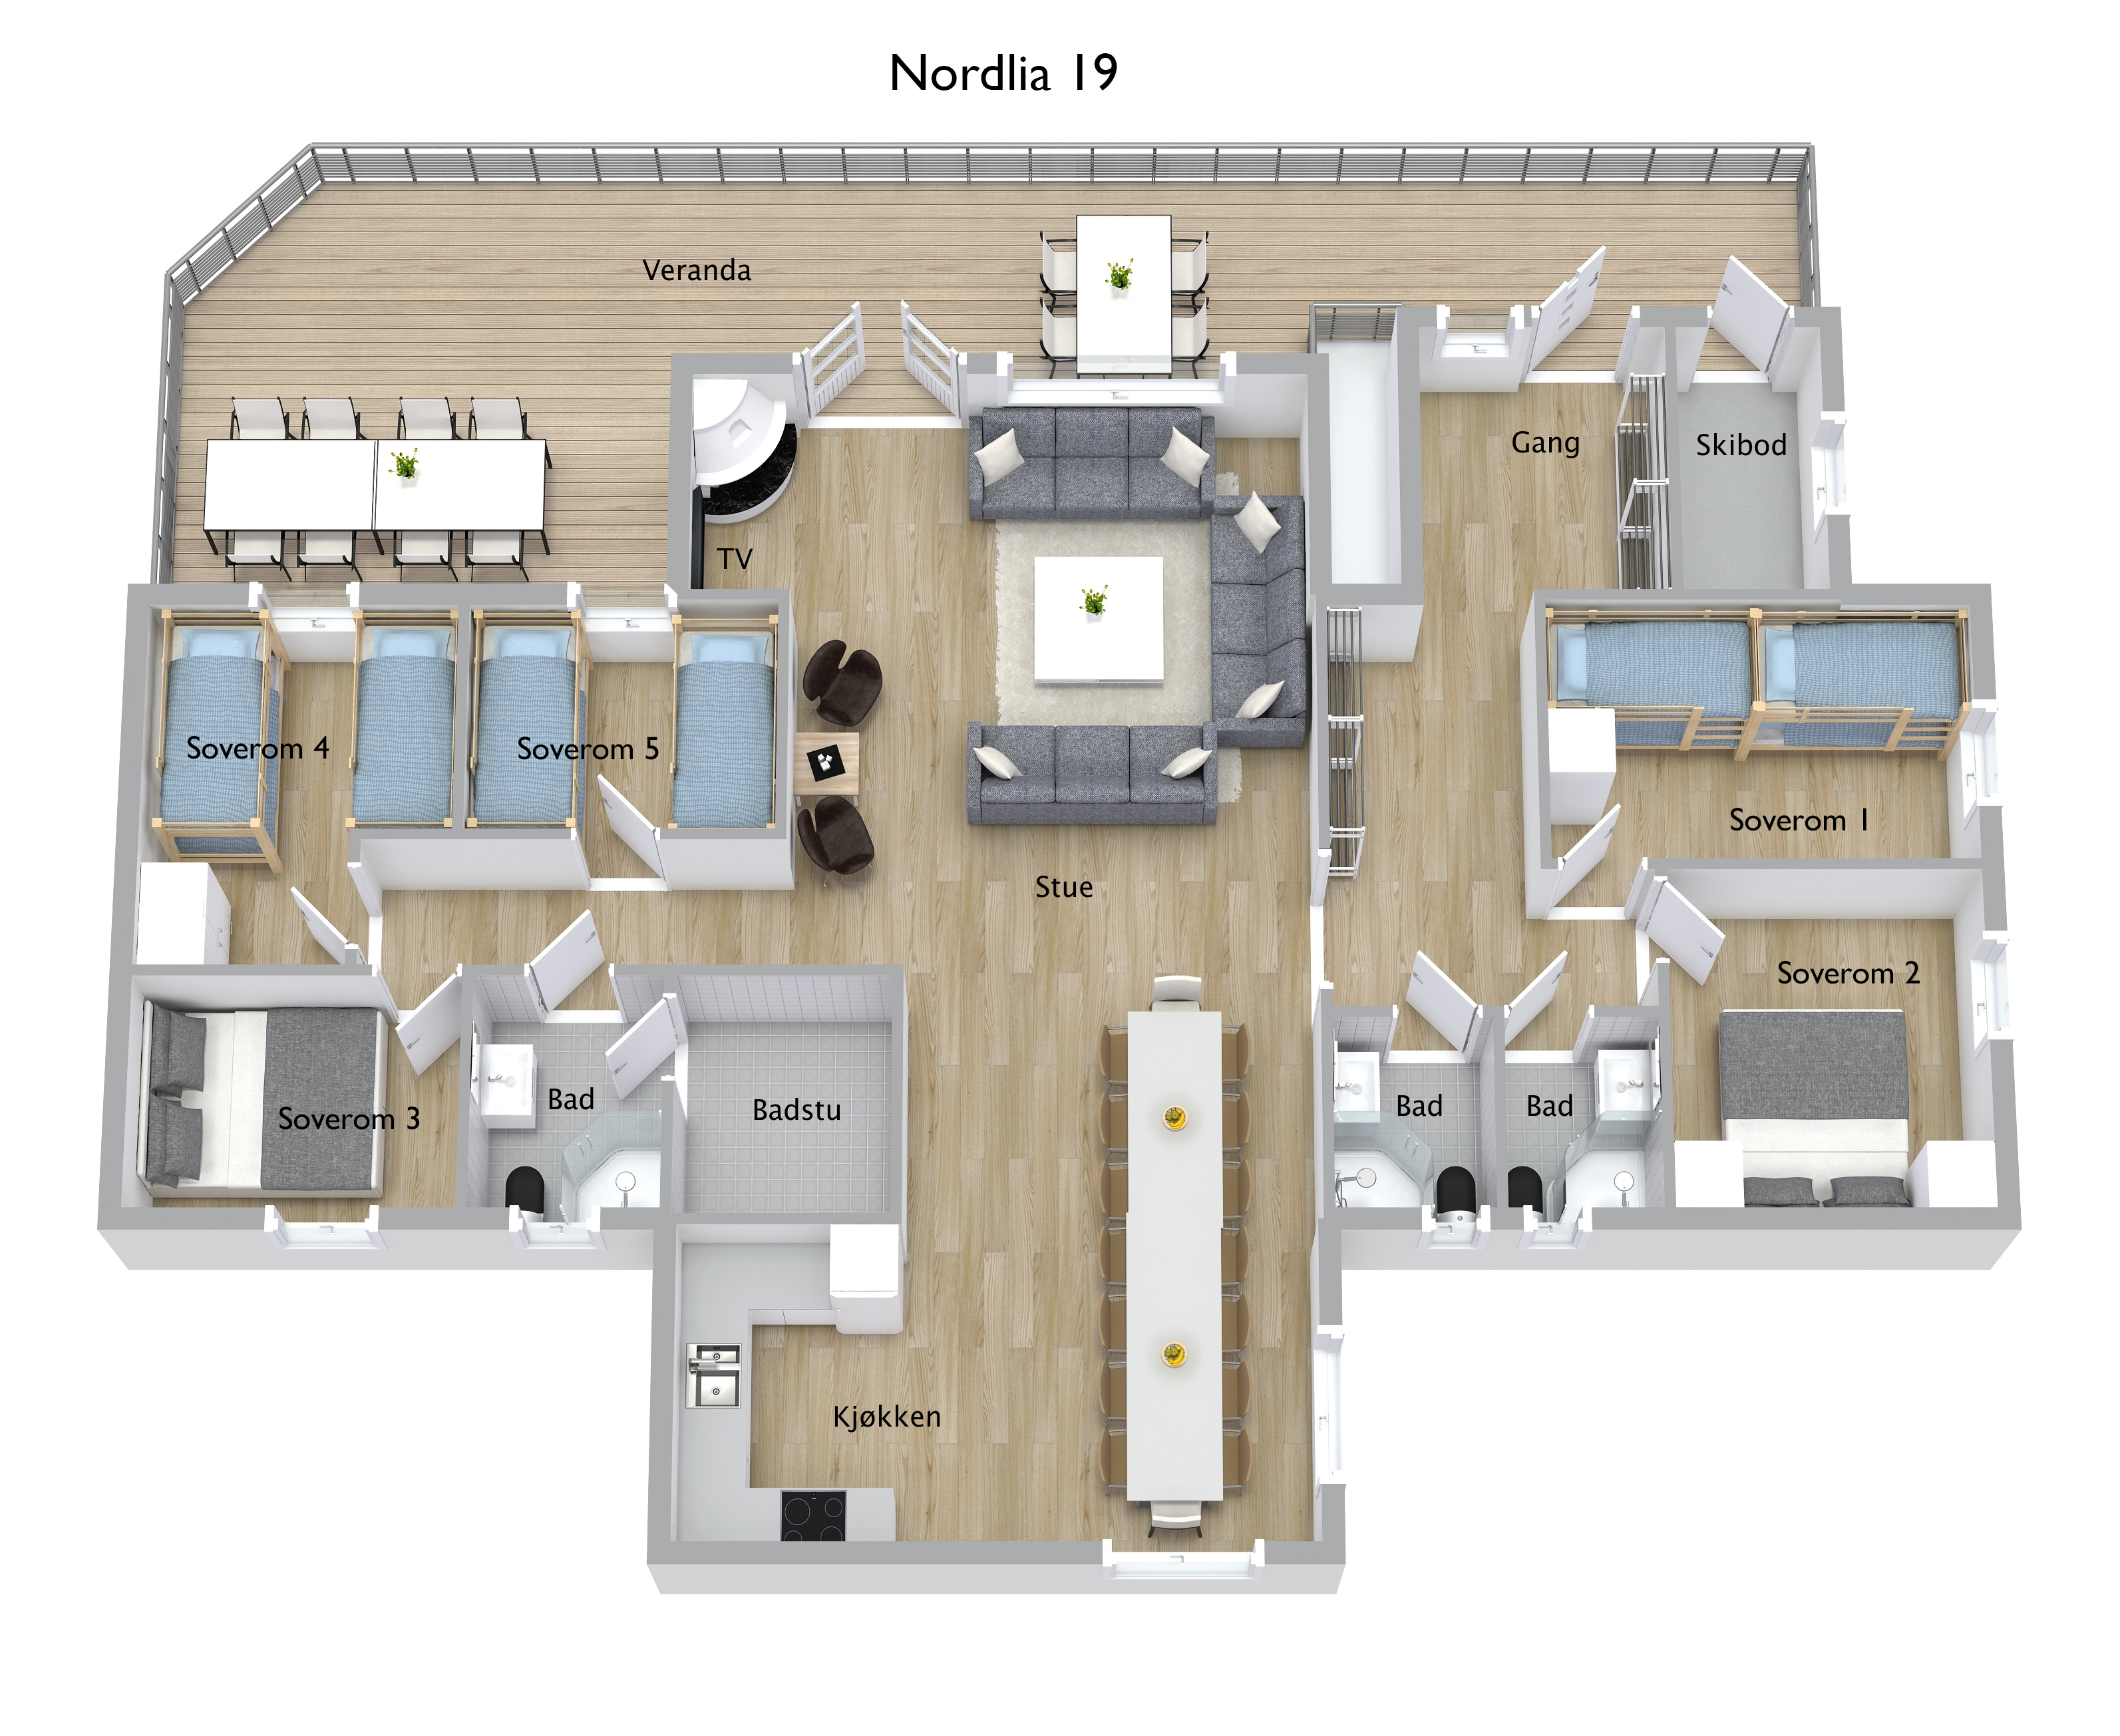 Nordlia 19 3D Floor Plan